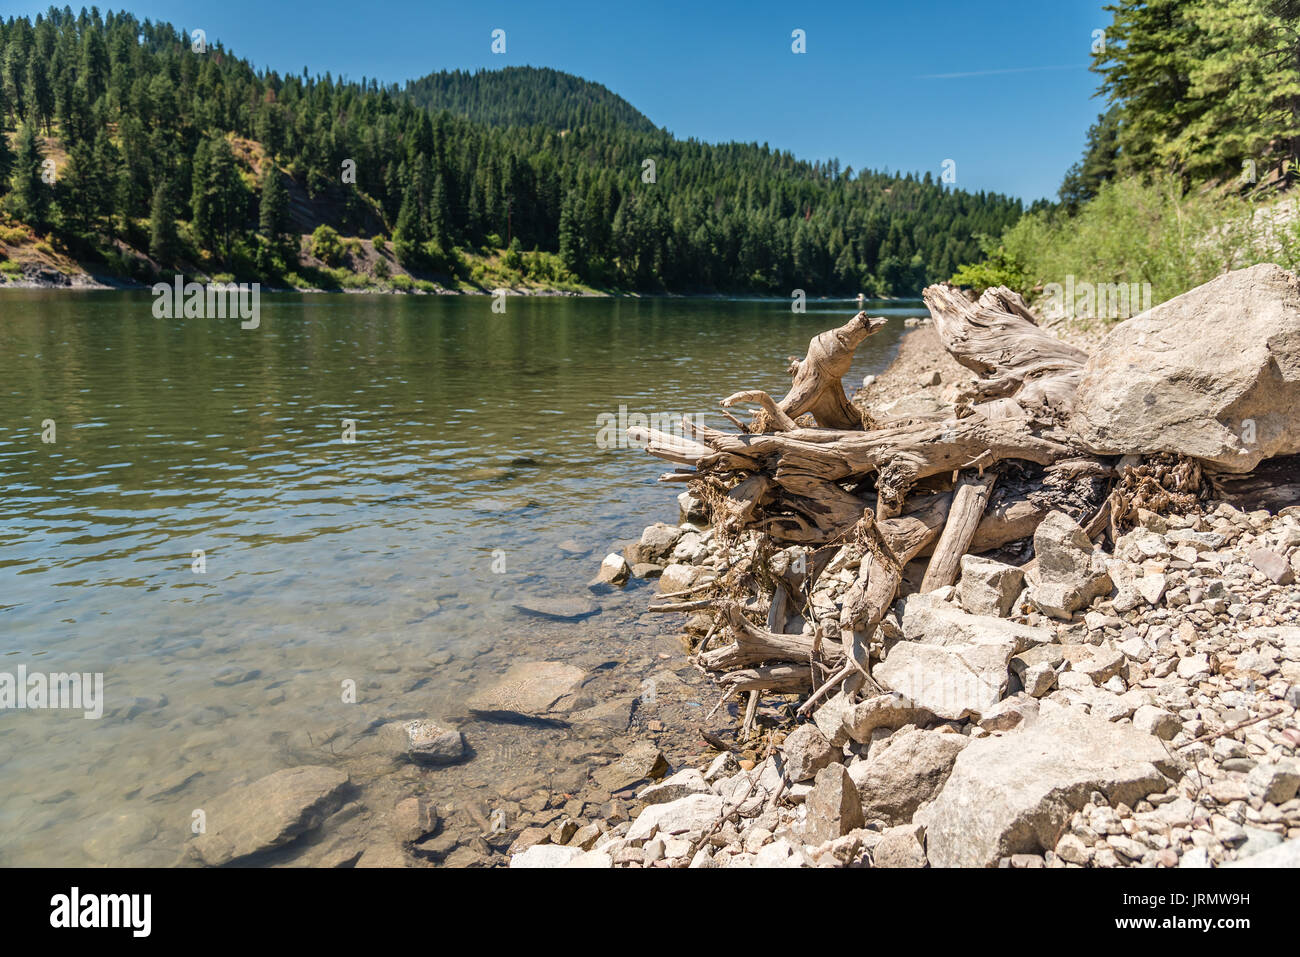 Beautiful Pend Oreille River at Pioneer Park. - Stock Image